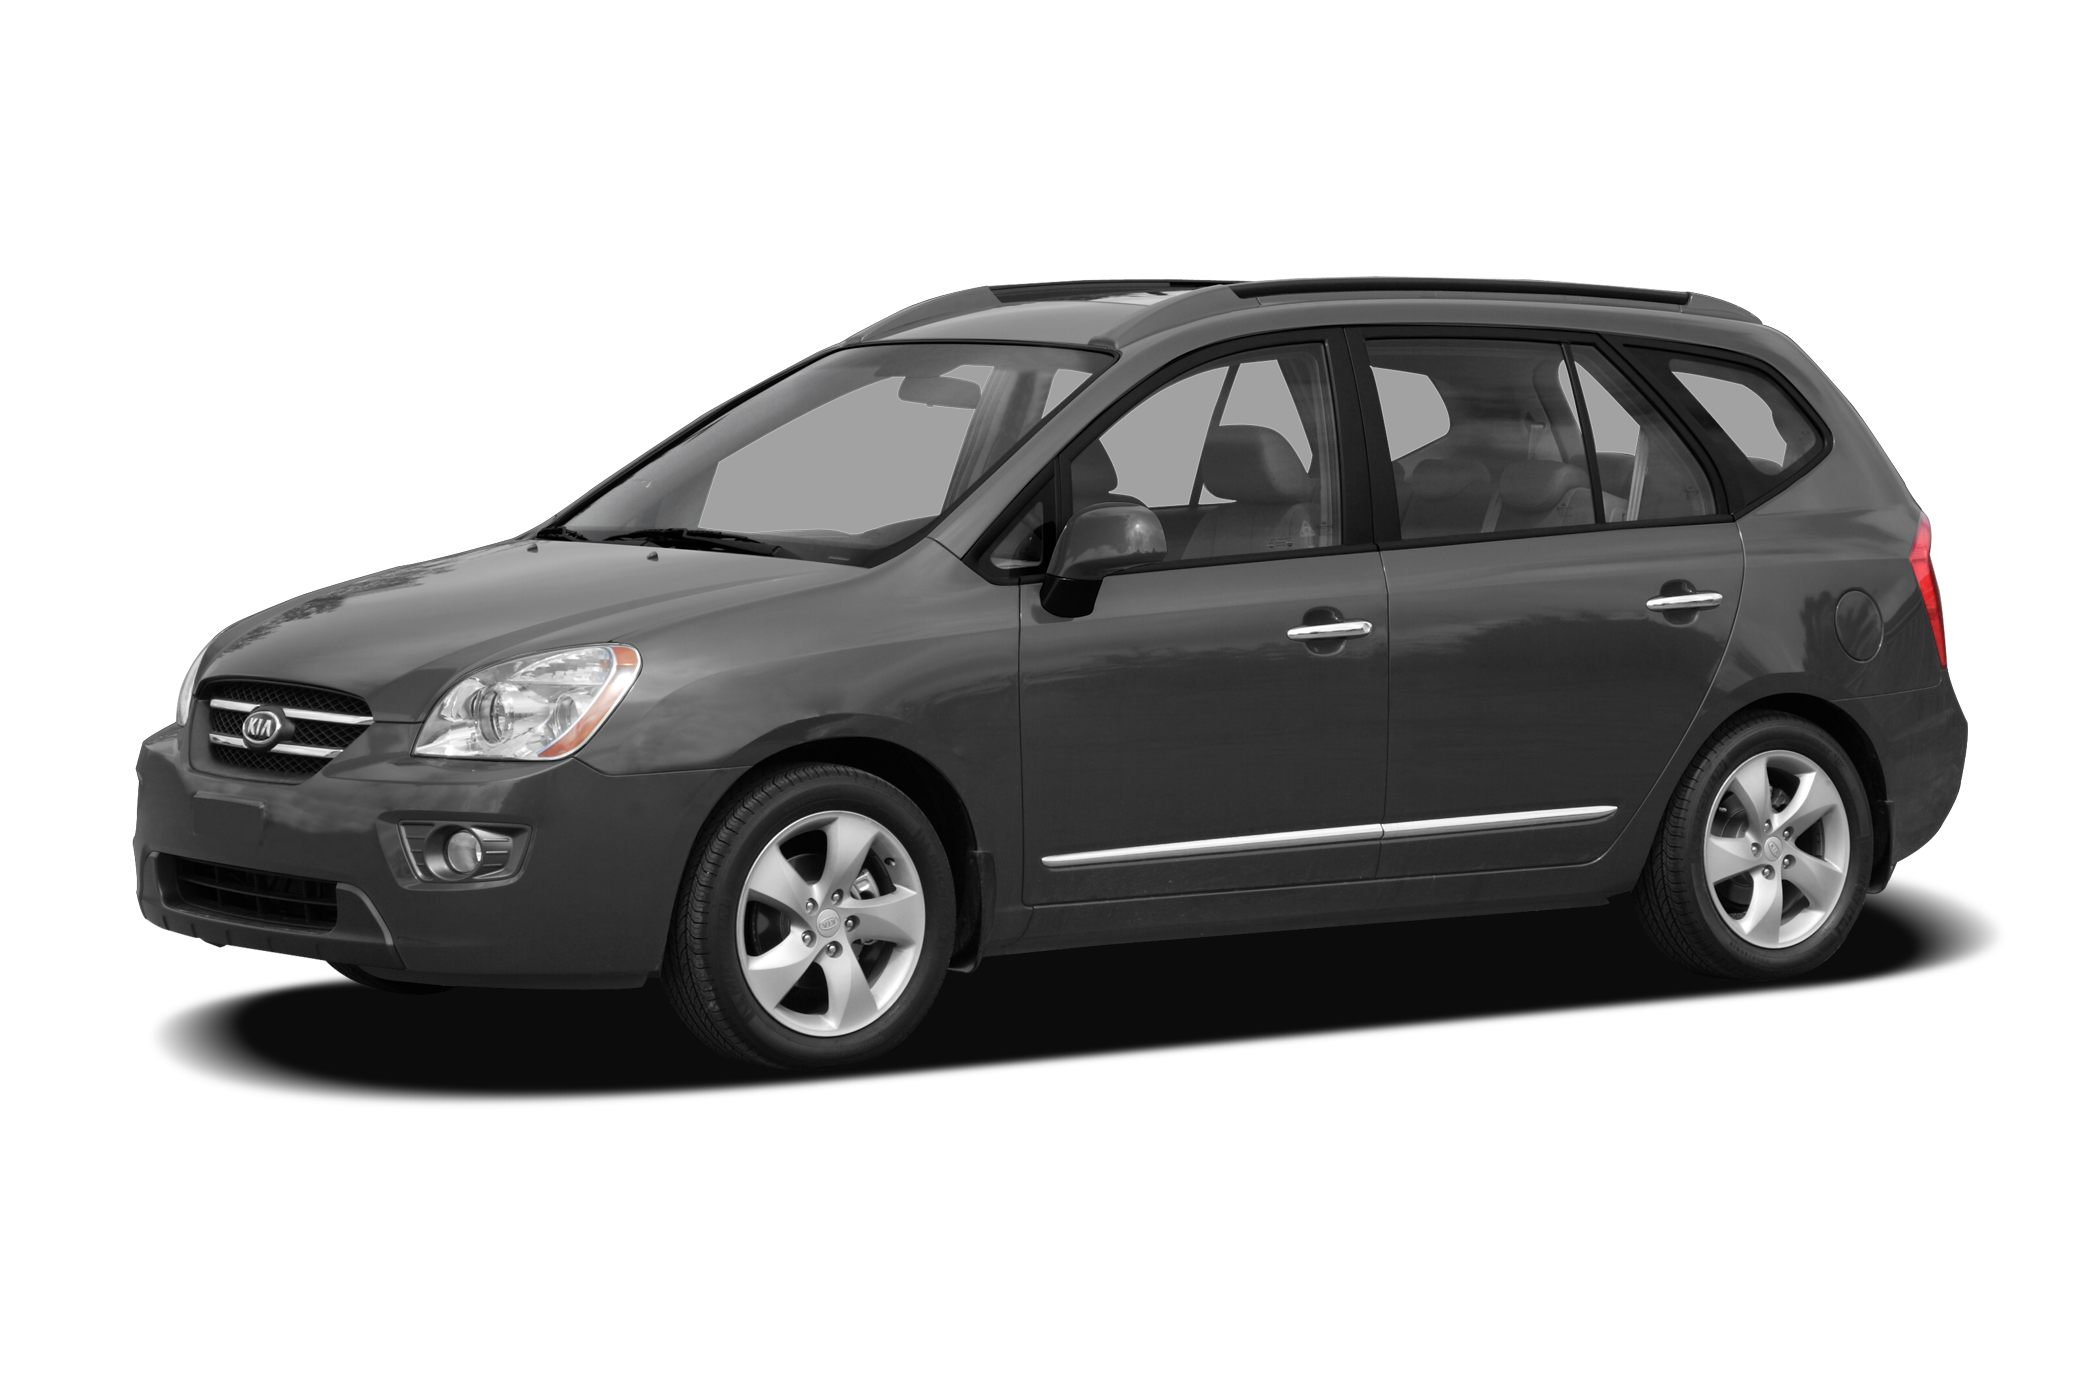 2008 Kia Rondo LX Minivan for sale in Charlotte for $7,486 with 120,446 miles.